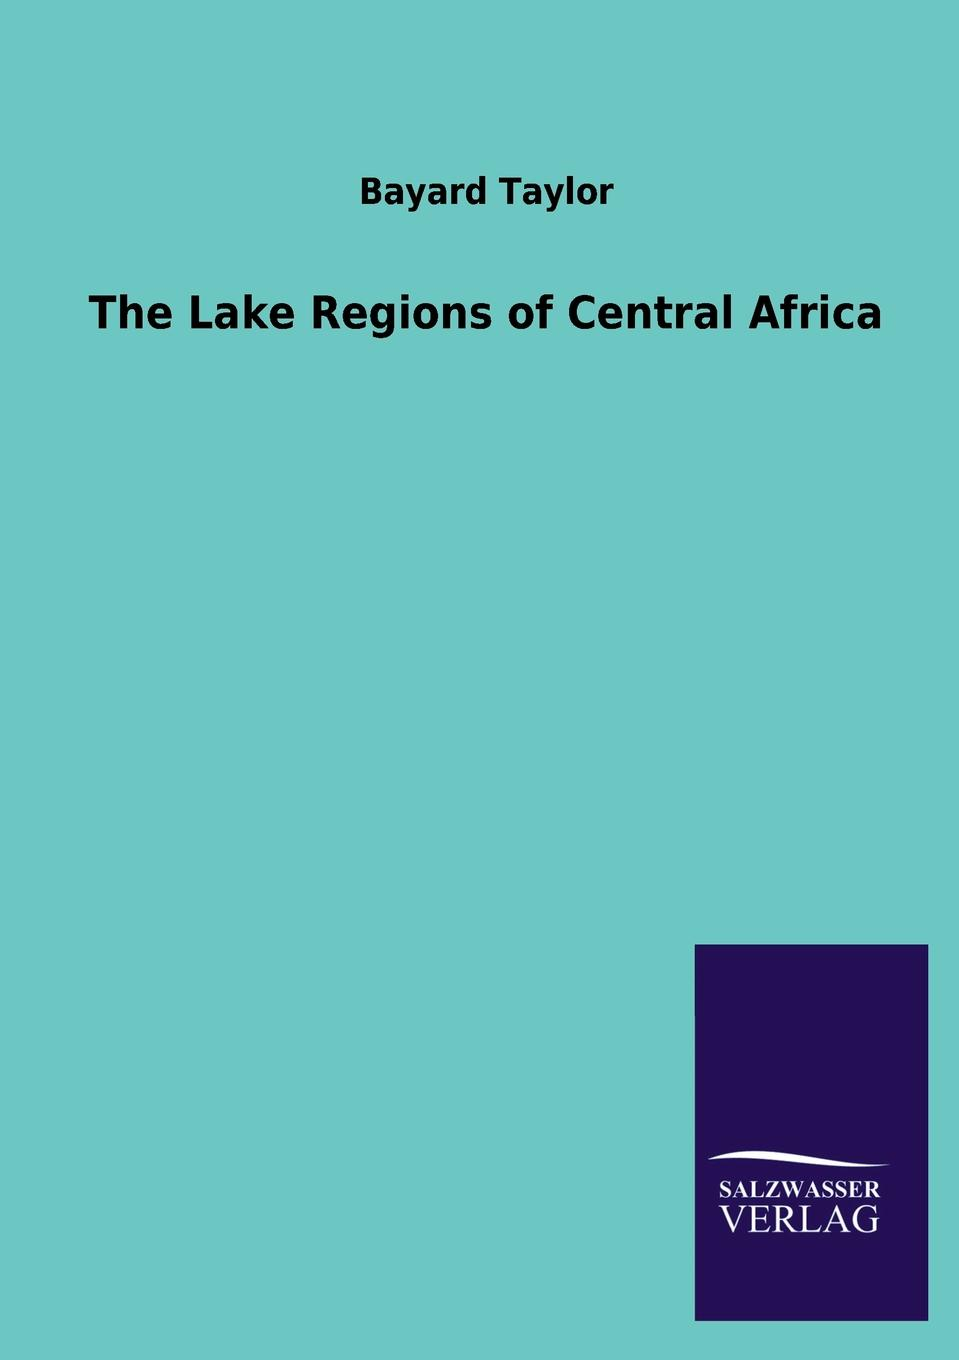 Bayard Taylor The Lake Regions of Central Africa